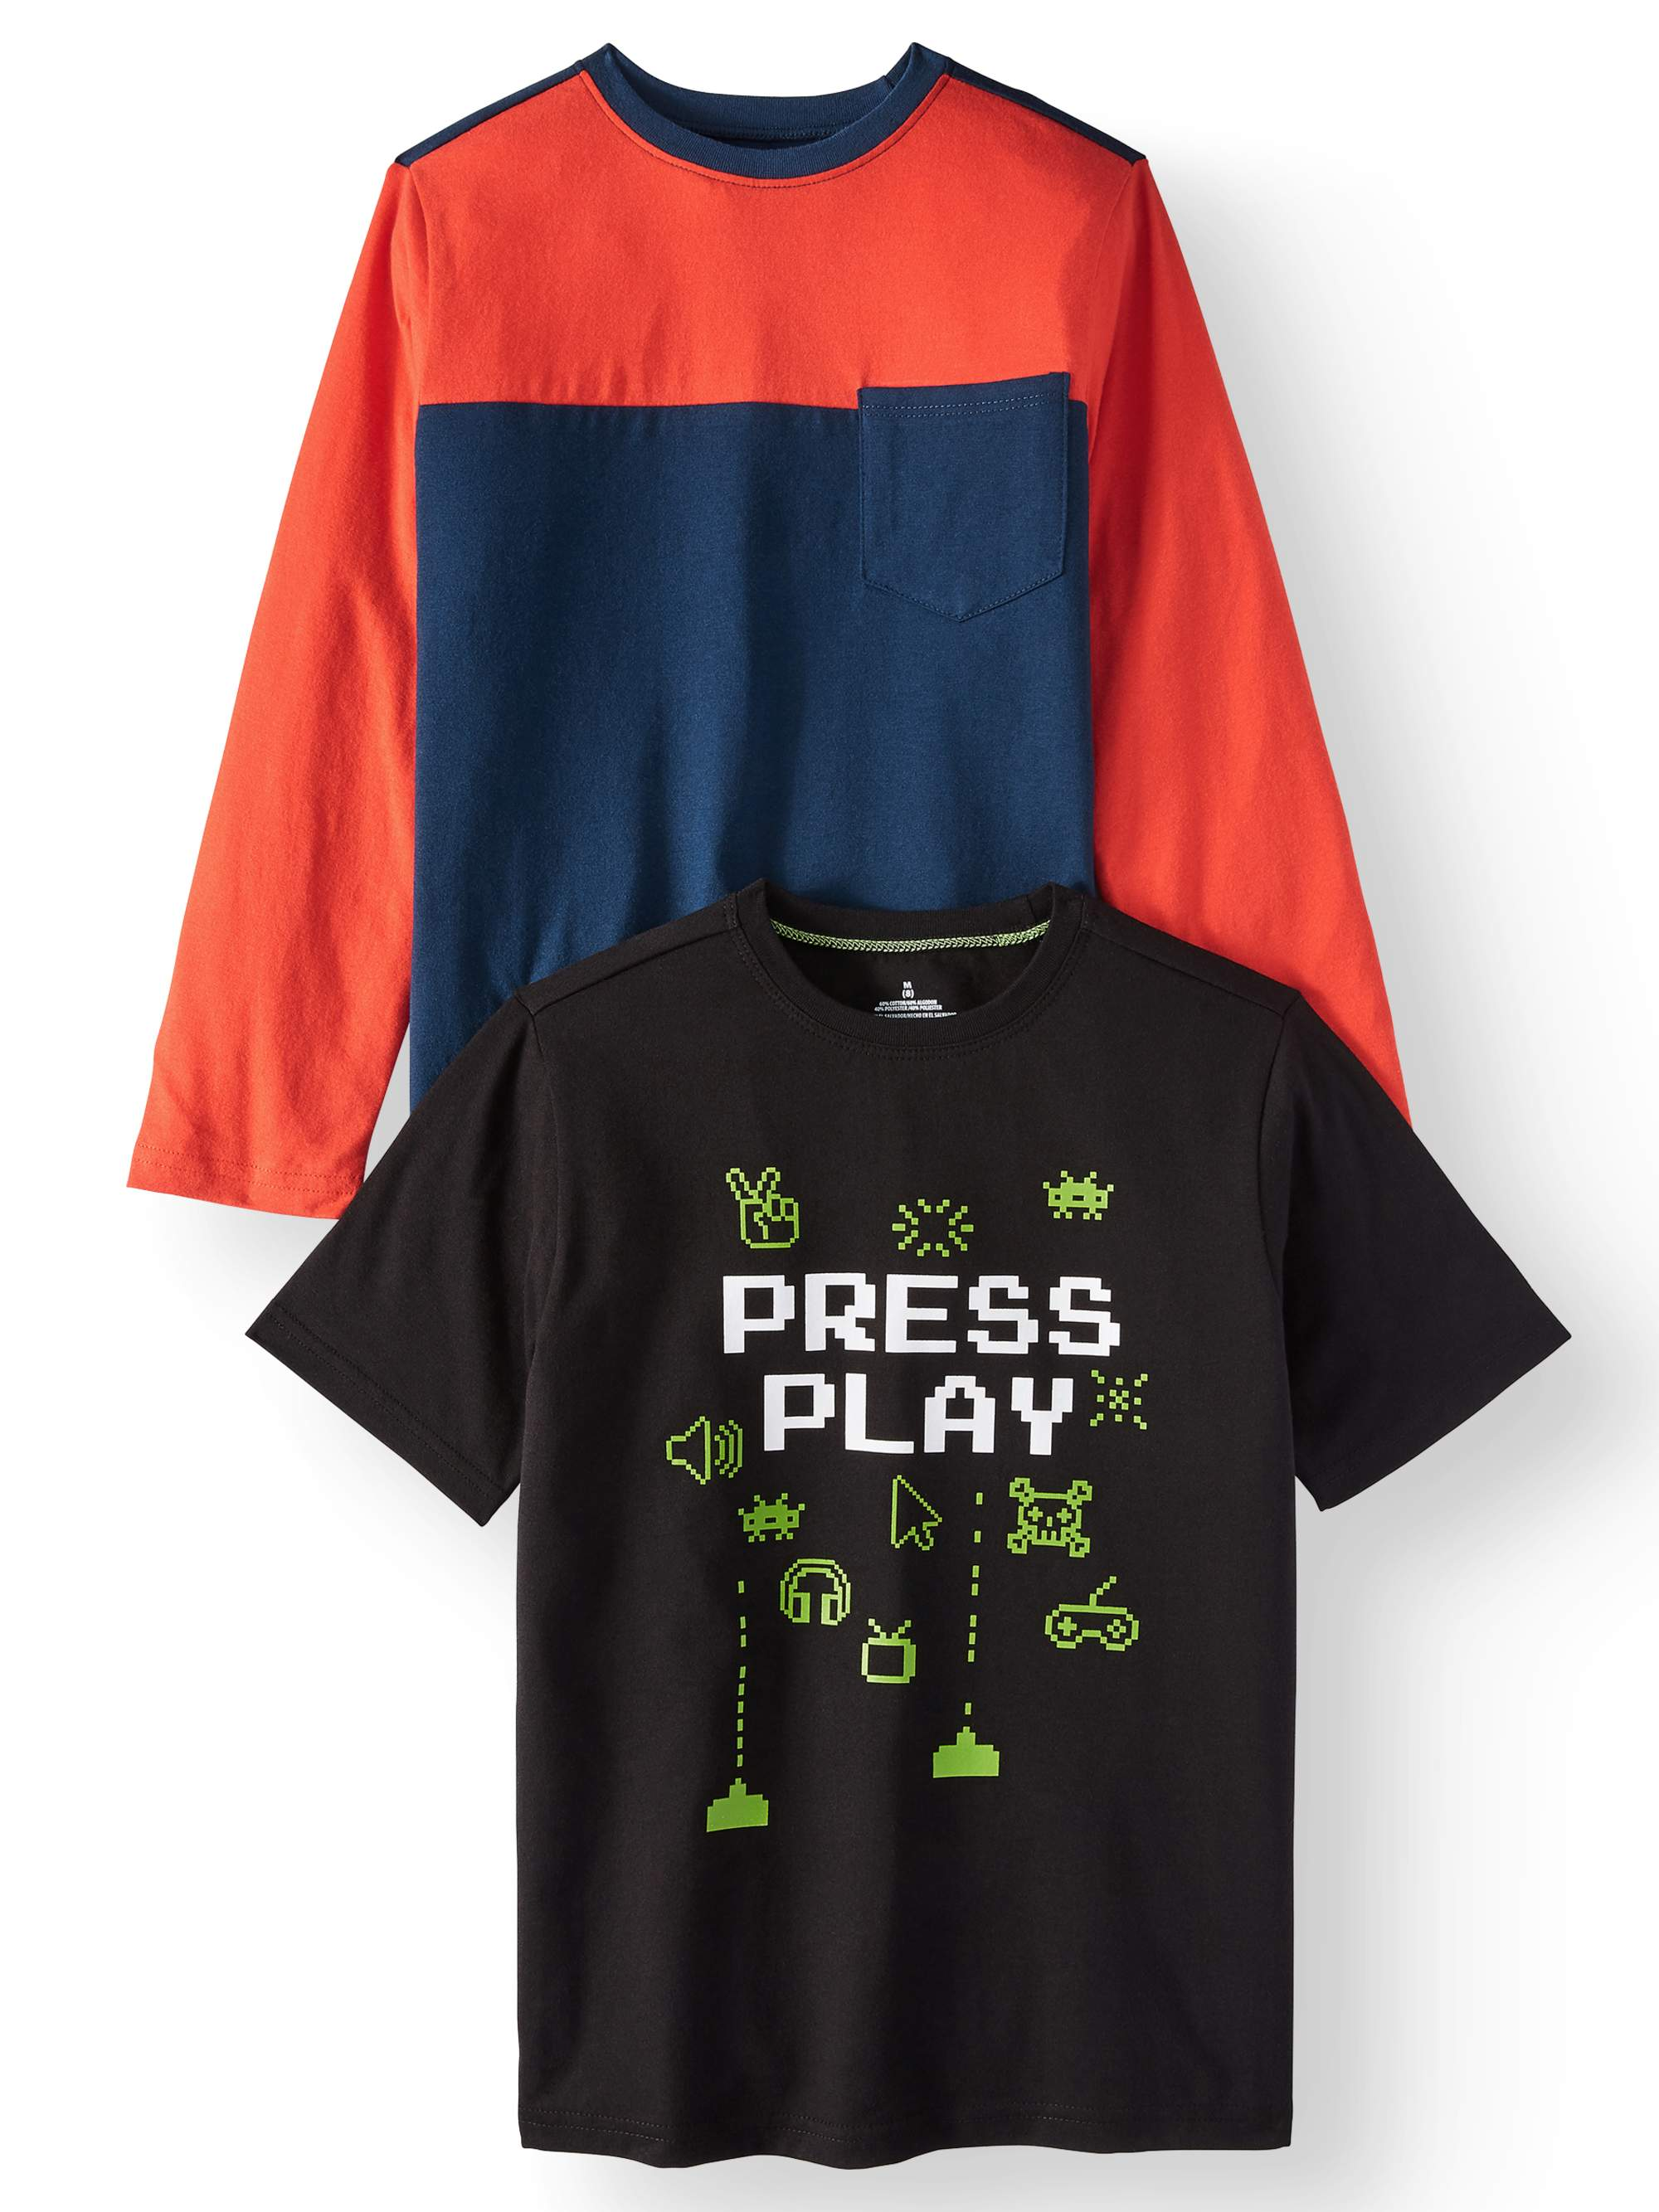 Short Sleeve Graphic Option and Long Sleeve with Pocket Crew Neck Soft Tee Shirt, 2-Pack Set (Little Boys & Big Boys)